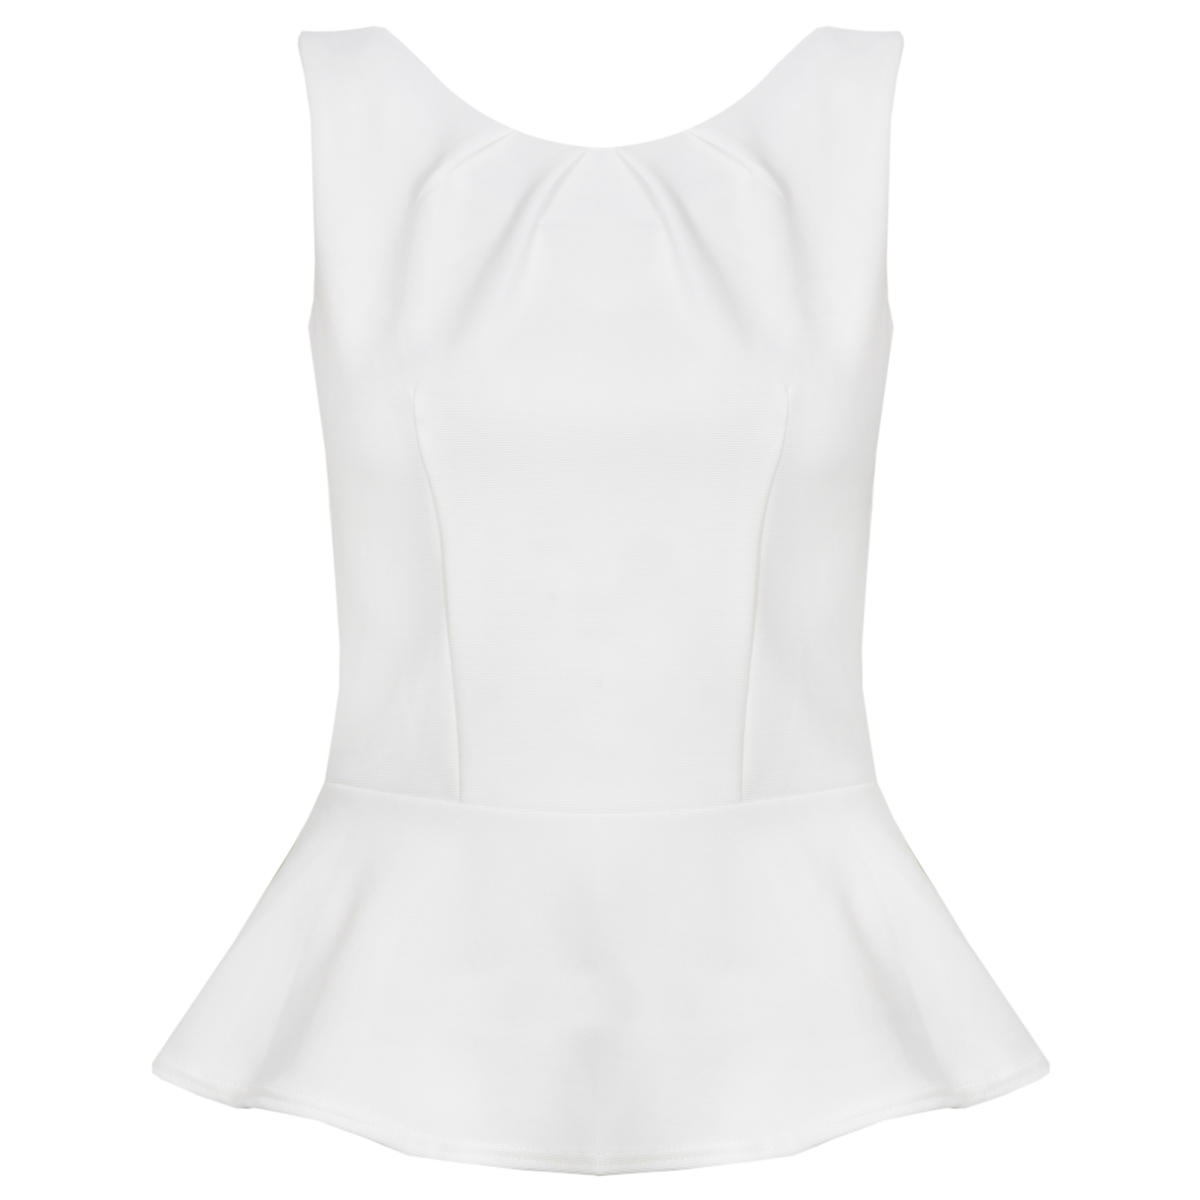 White Sleeveless Peplum Top Preview